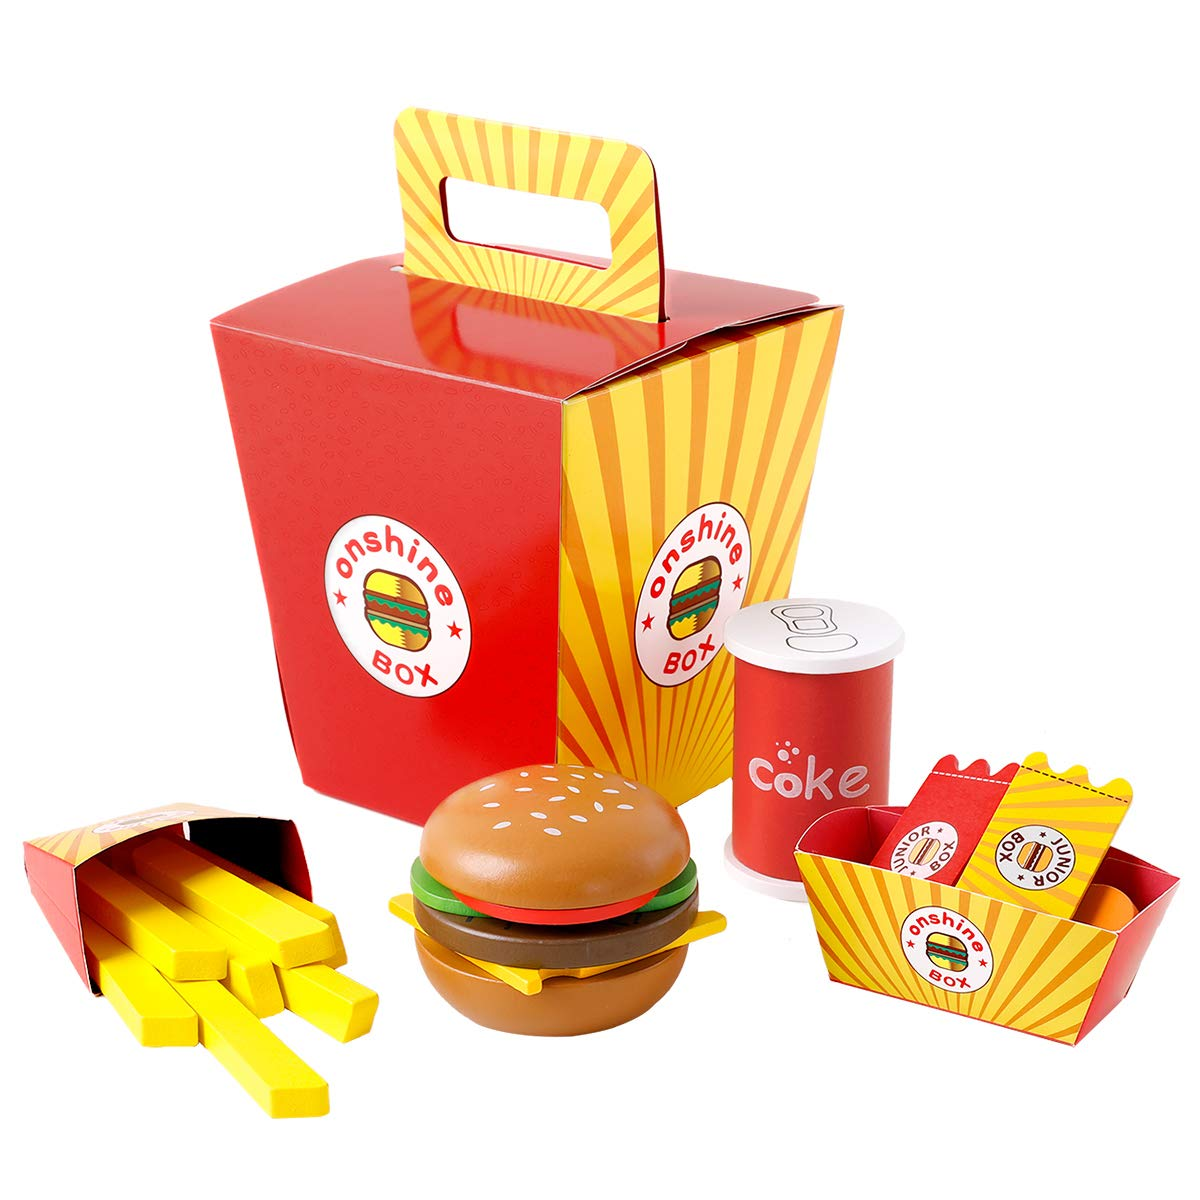 Onshine Wooden Fast Food Toy Set For Kids Burger Fries Food Play